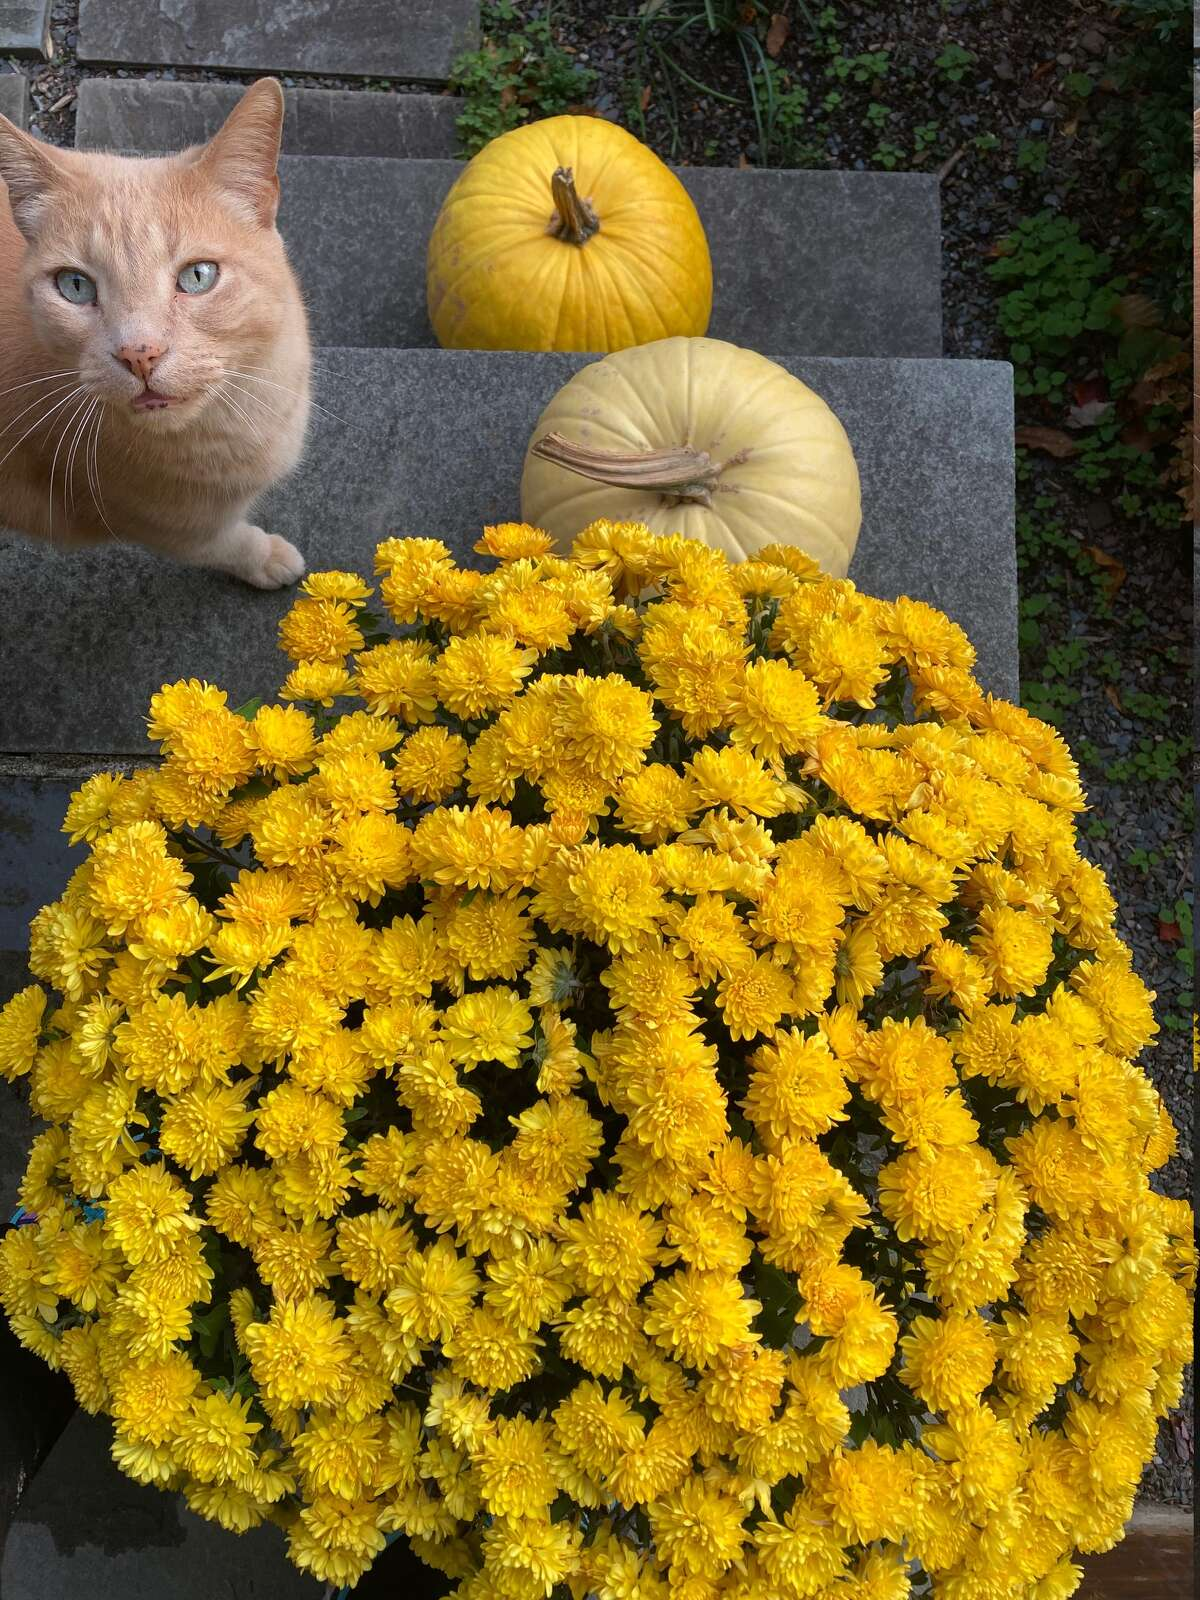 Tis the season for mums, pumpkins and cats, too.